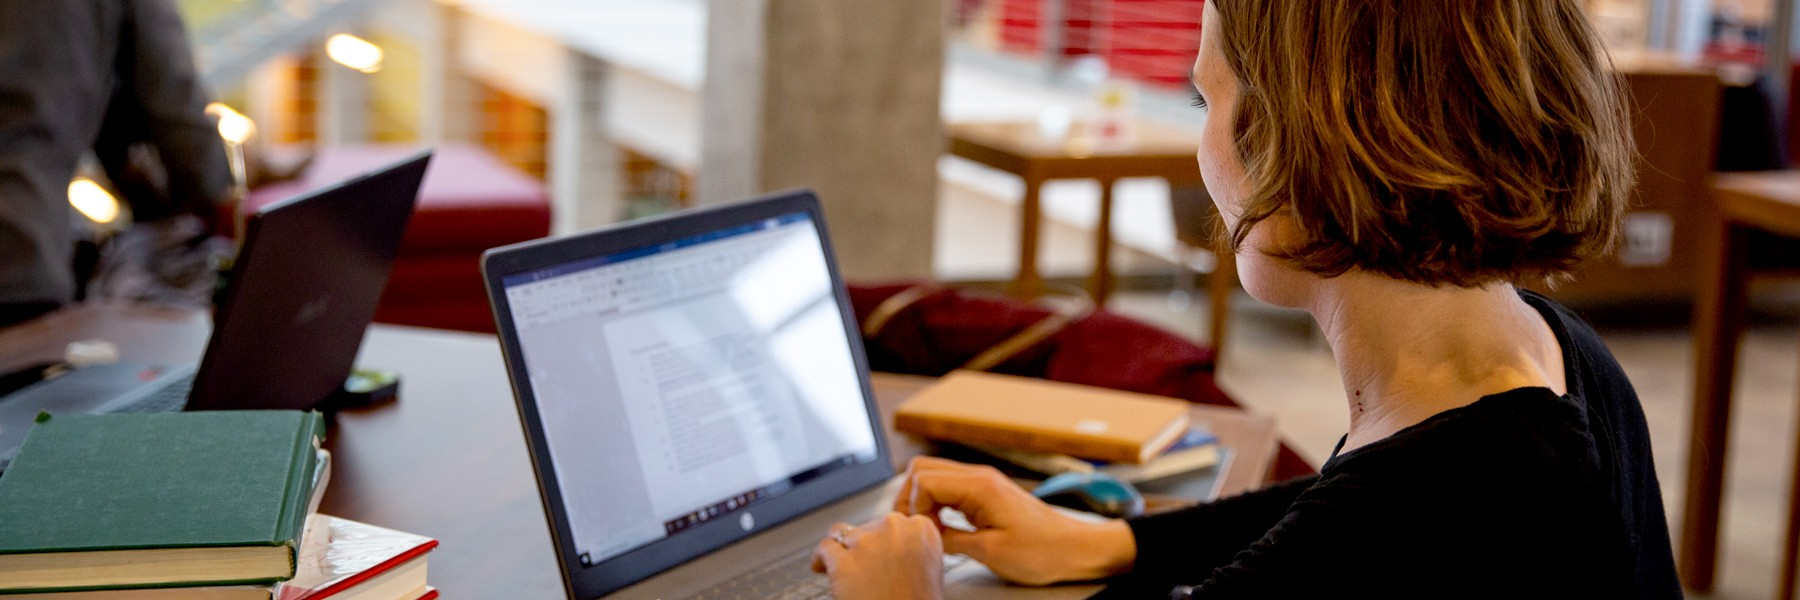 Woman using a laptop in a library